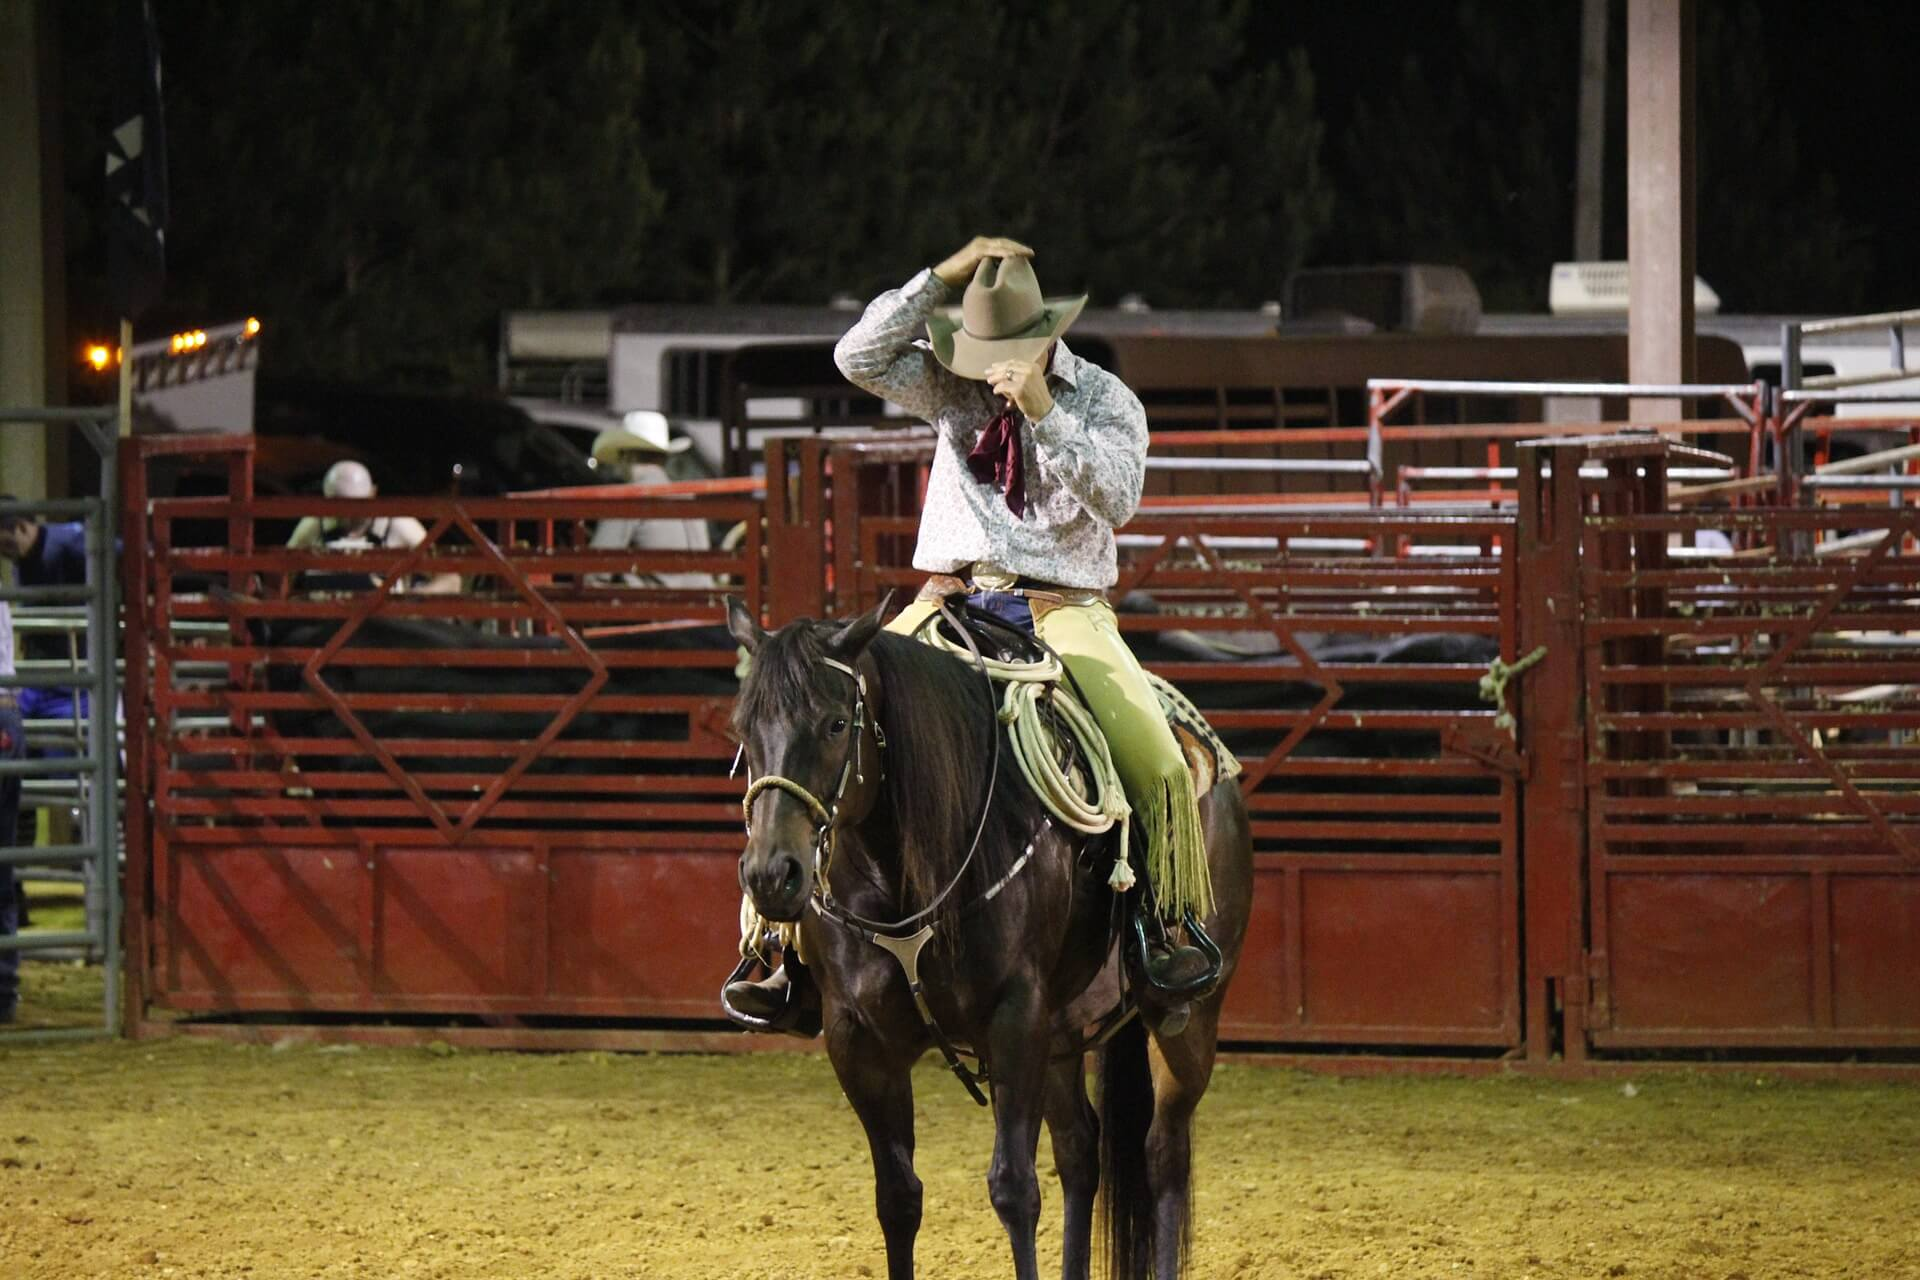 28th Annual Arcadia Valley Lions Club Rodeo